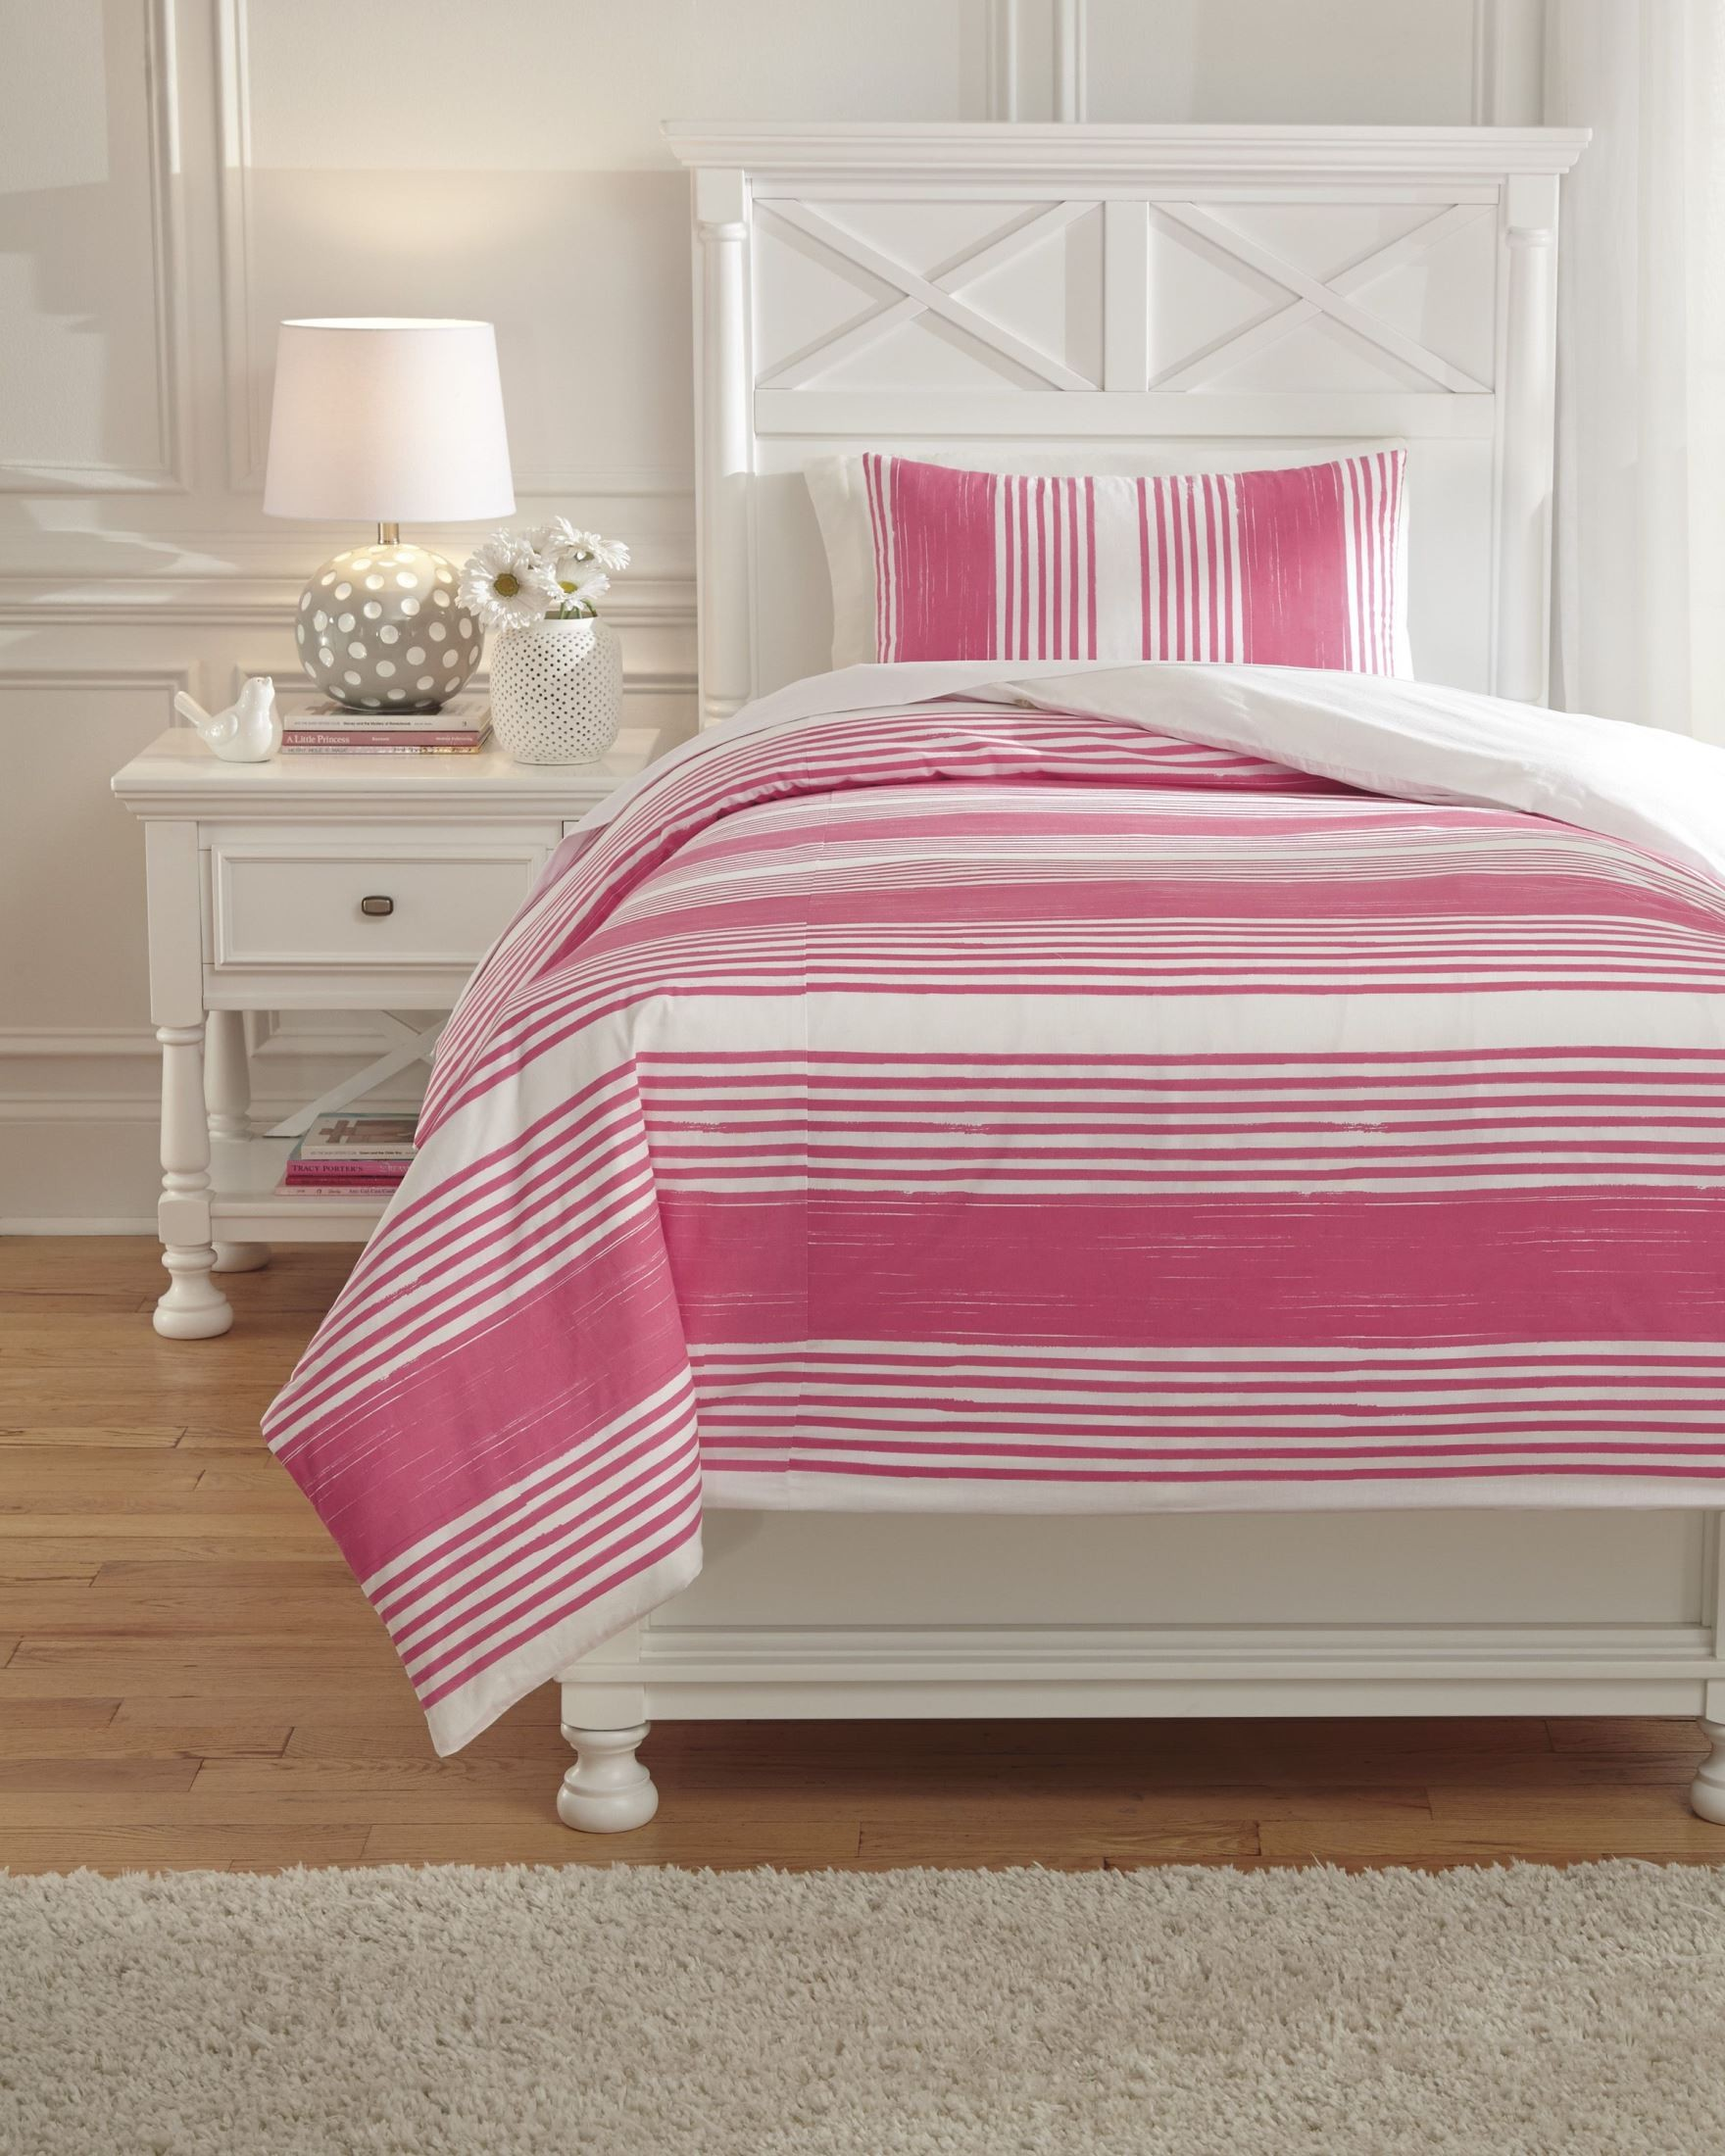 taries pink twin duvet cover set from ashley q729021t coleman furniture. Black Bedroom Furniture Sets. Home Design Ideas